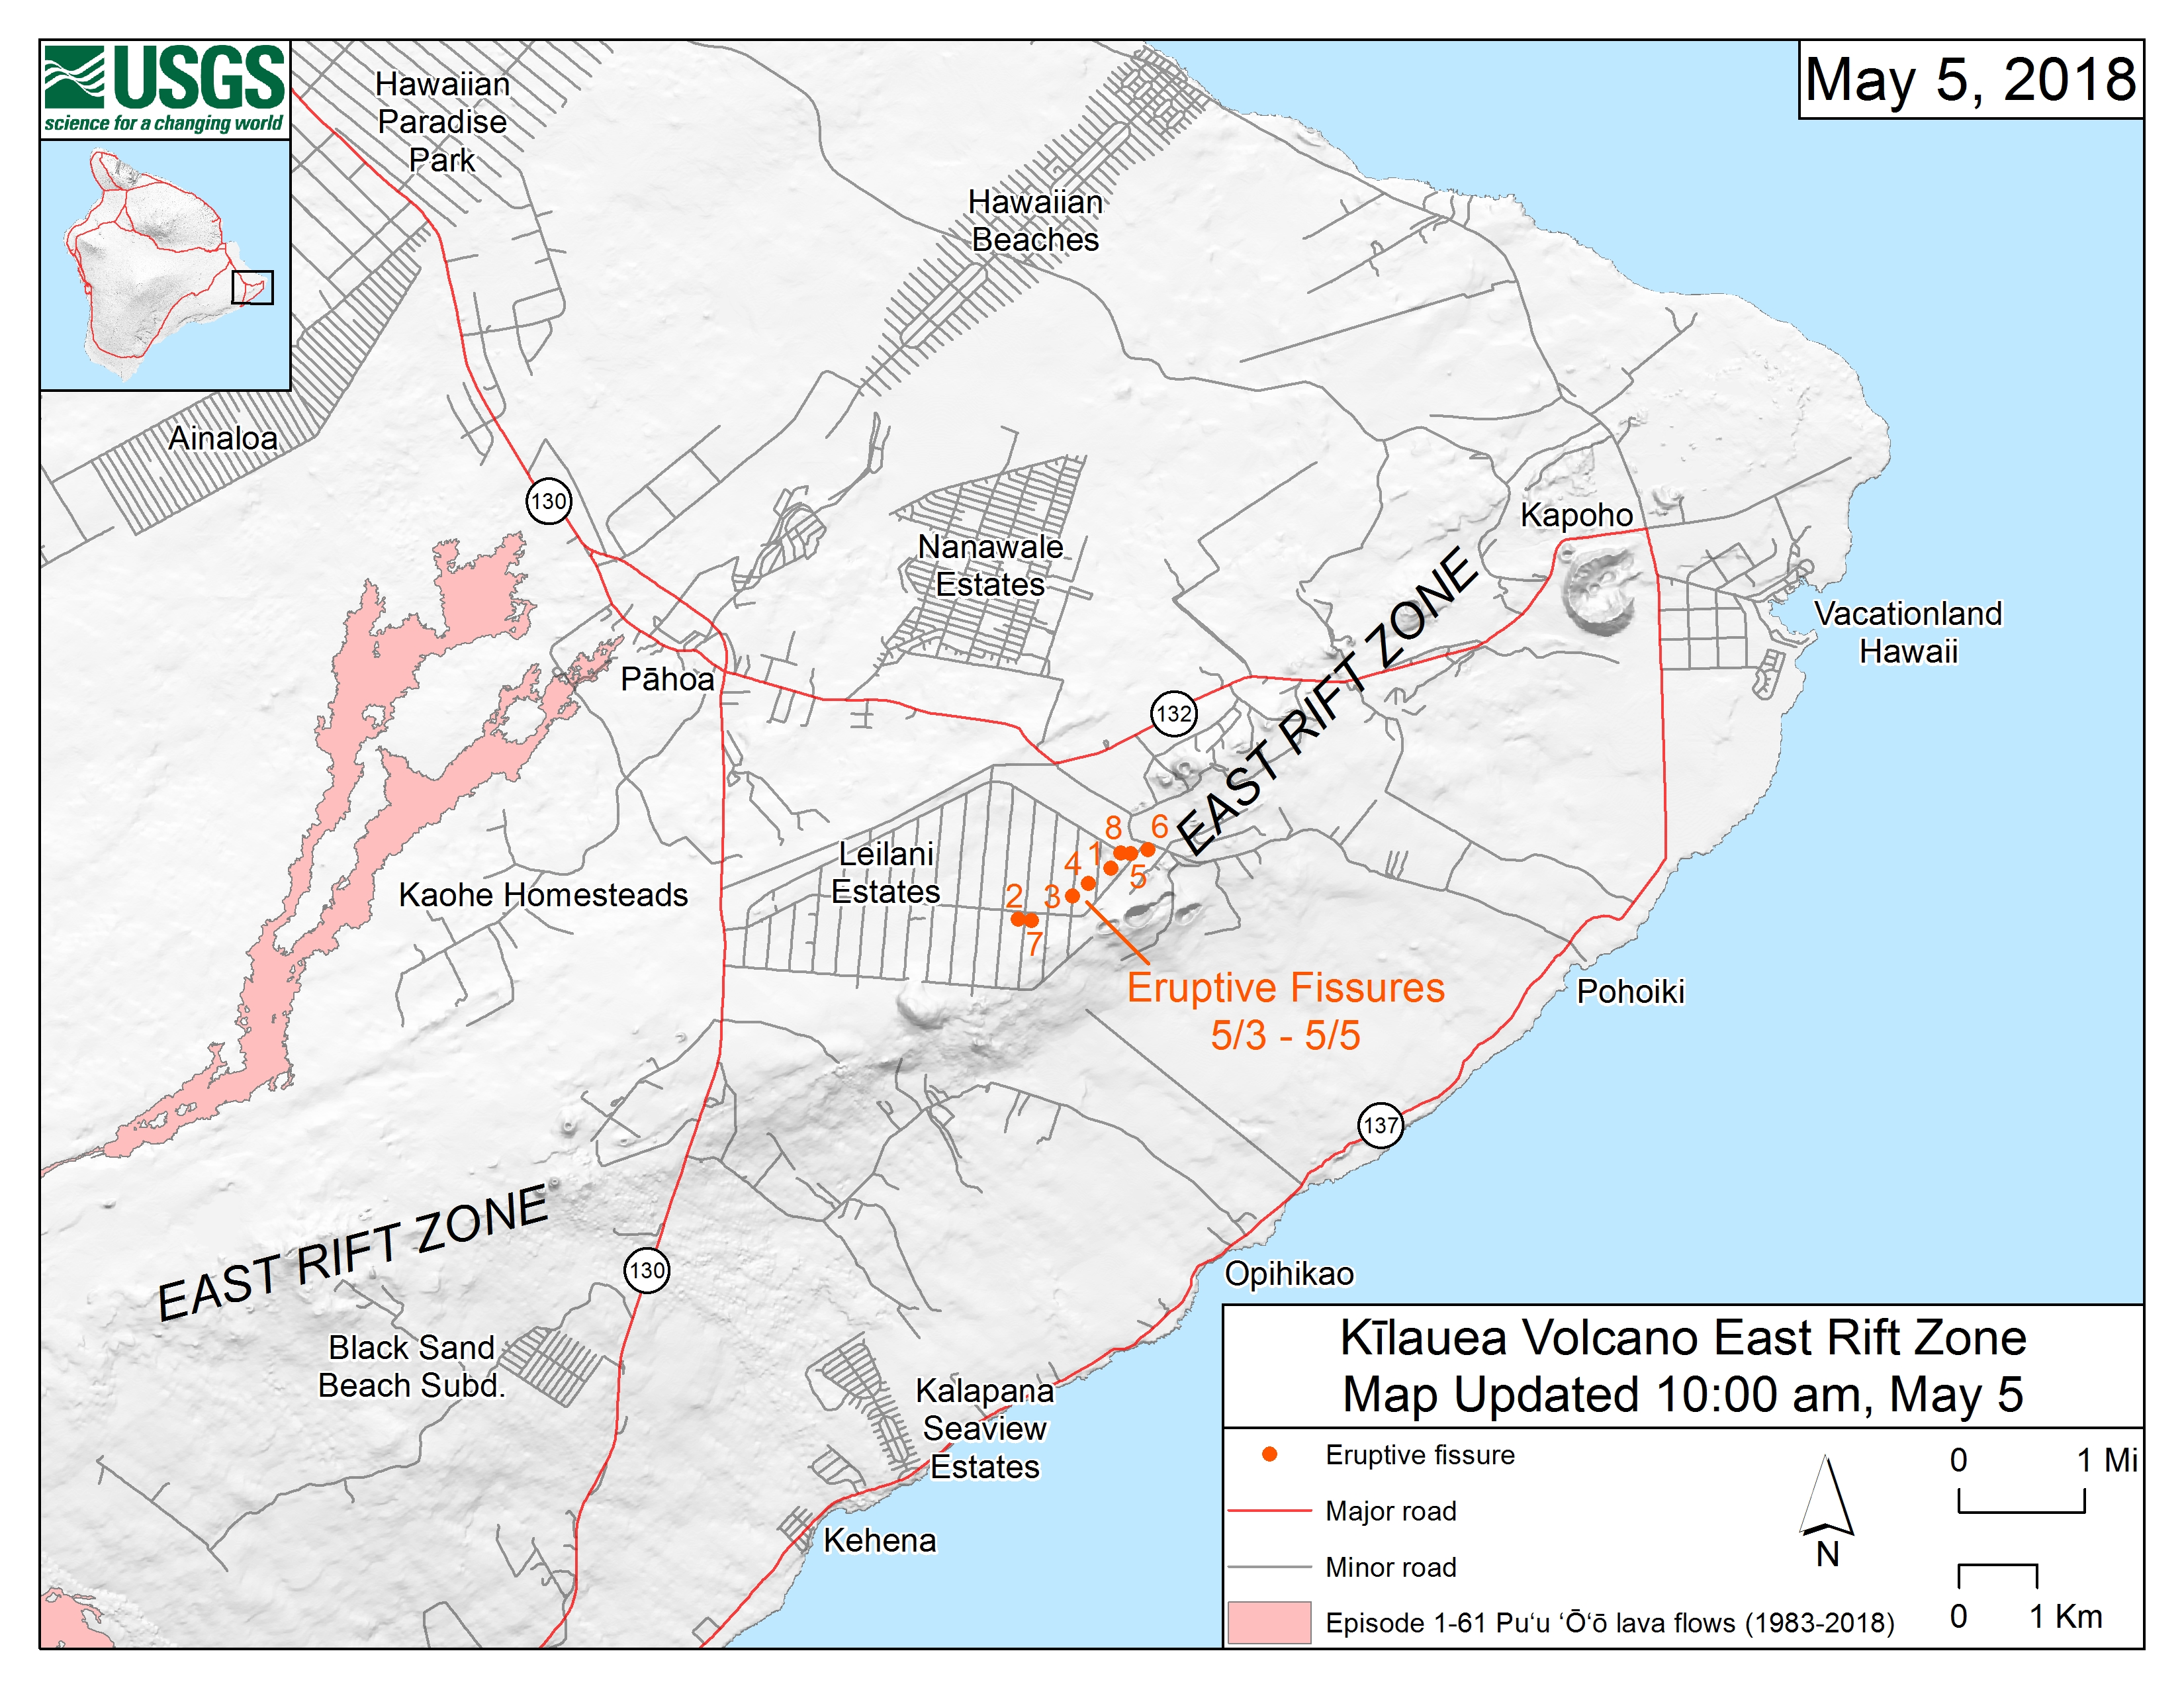 USGS Map Shows Location of 8 Fissures   Big Island Now